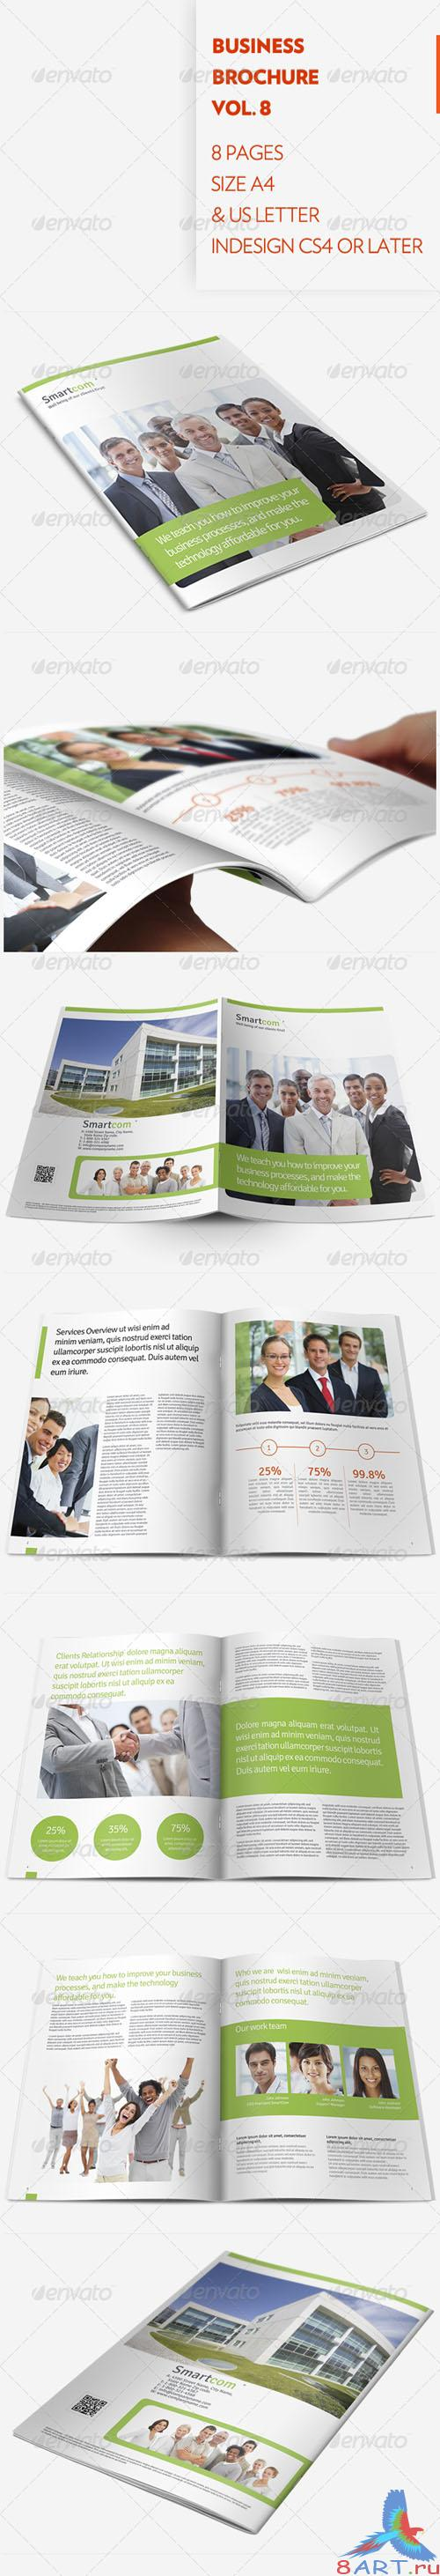 GraphicRiver - Business Brochure Vol 9 - 2753165